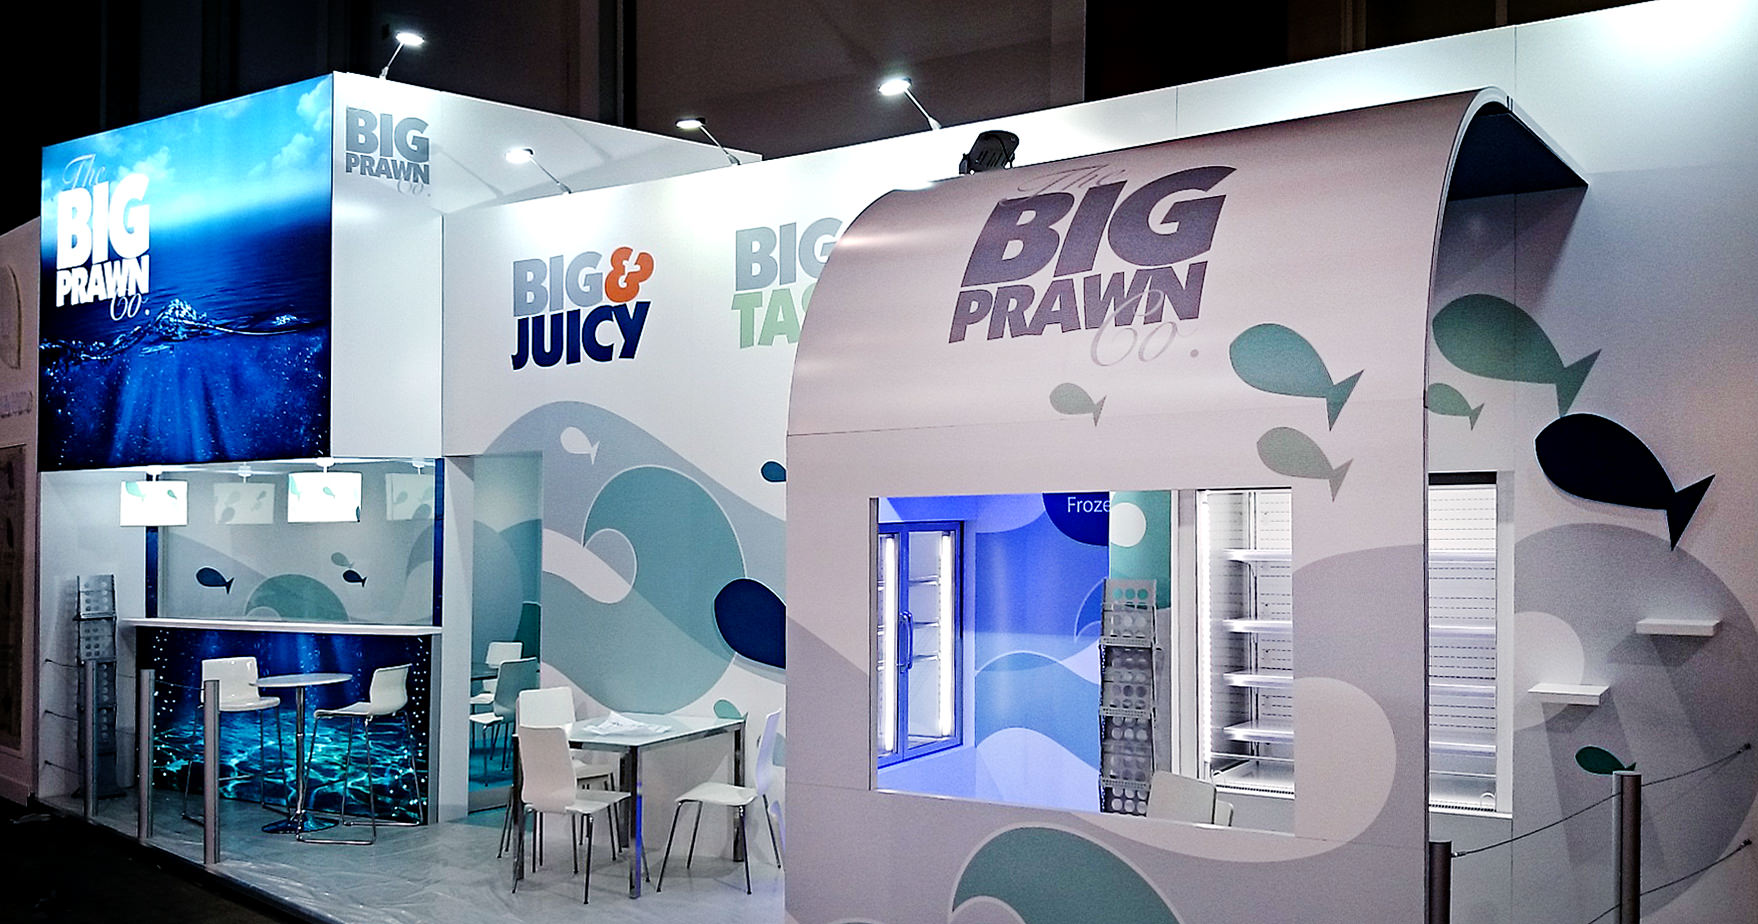 Exhibition stand for The Big Prawn Company